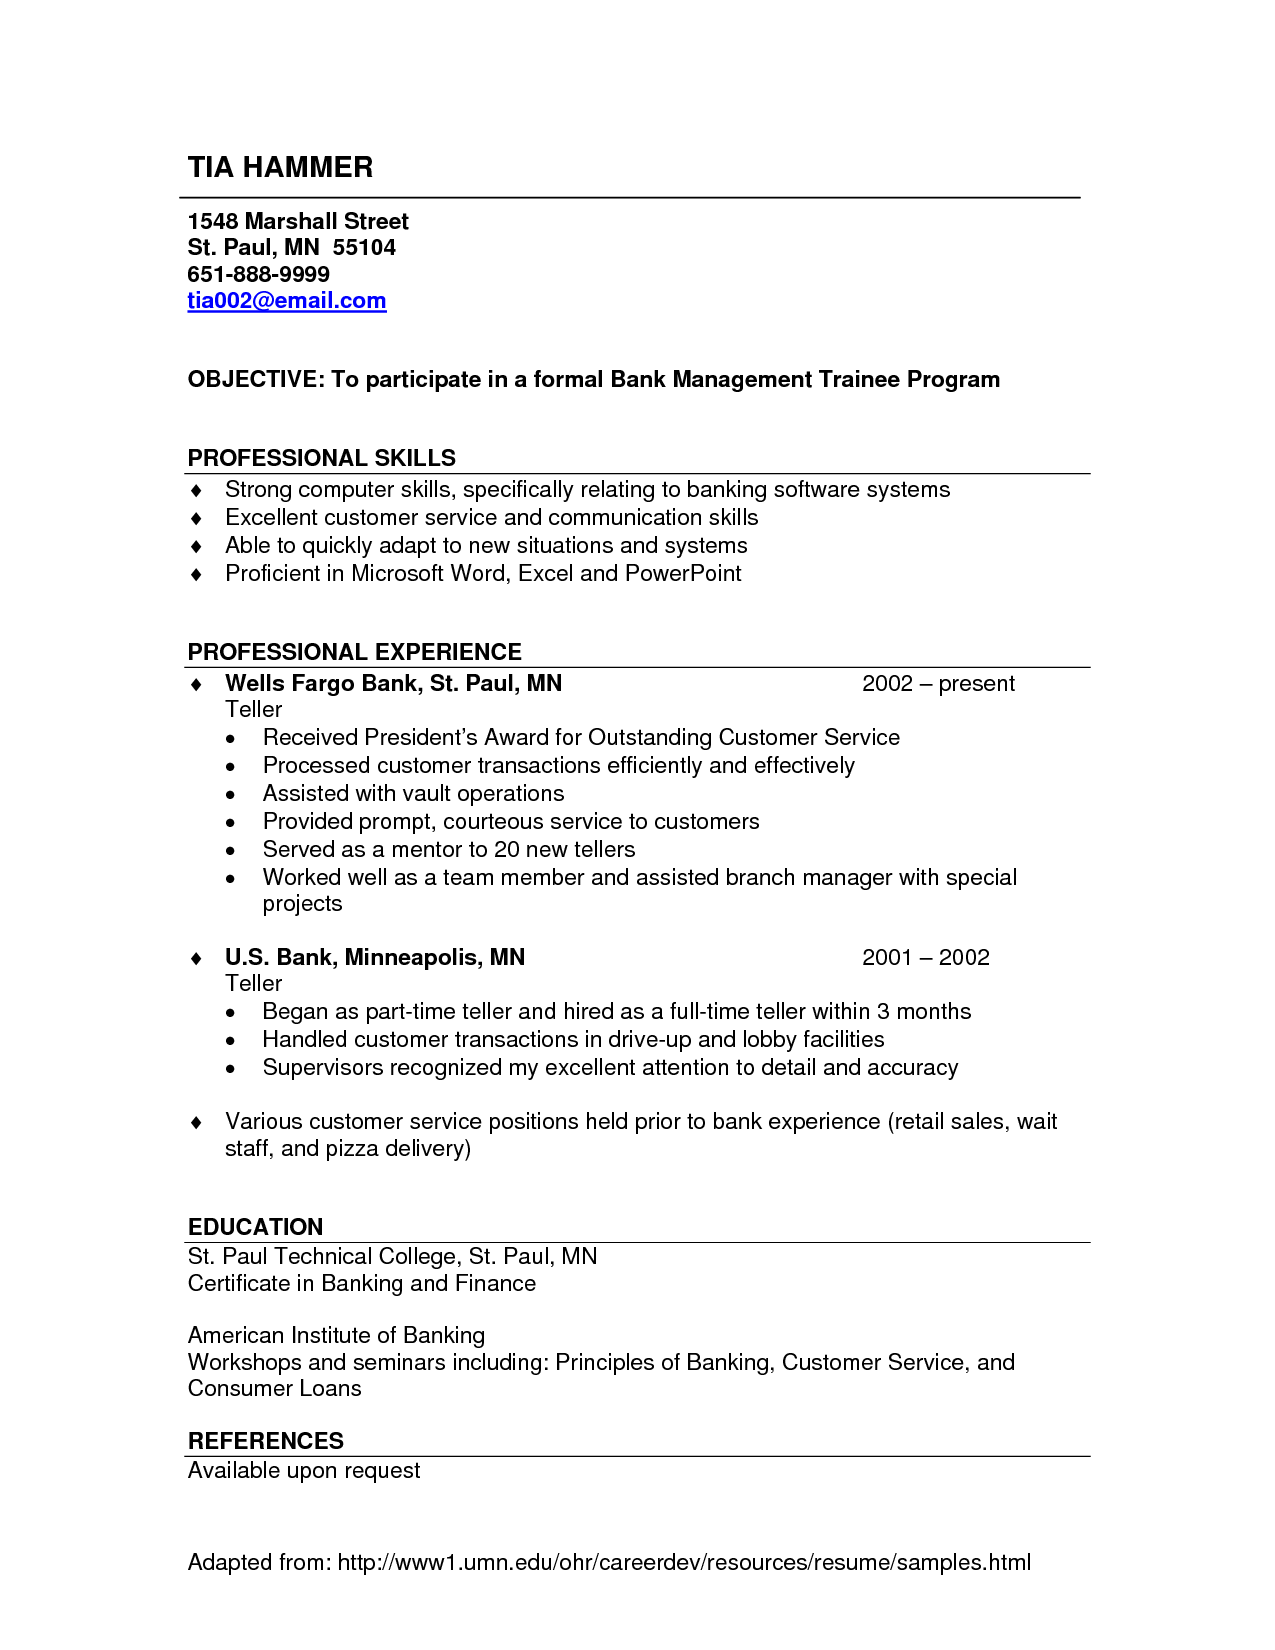 Sample Bank Teller Resume With No Experience    Http://www.resumecareer.info/sample Bank Teller Resume With No Experience 5/